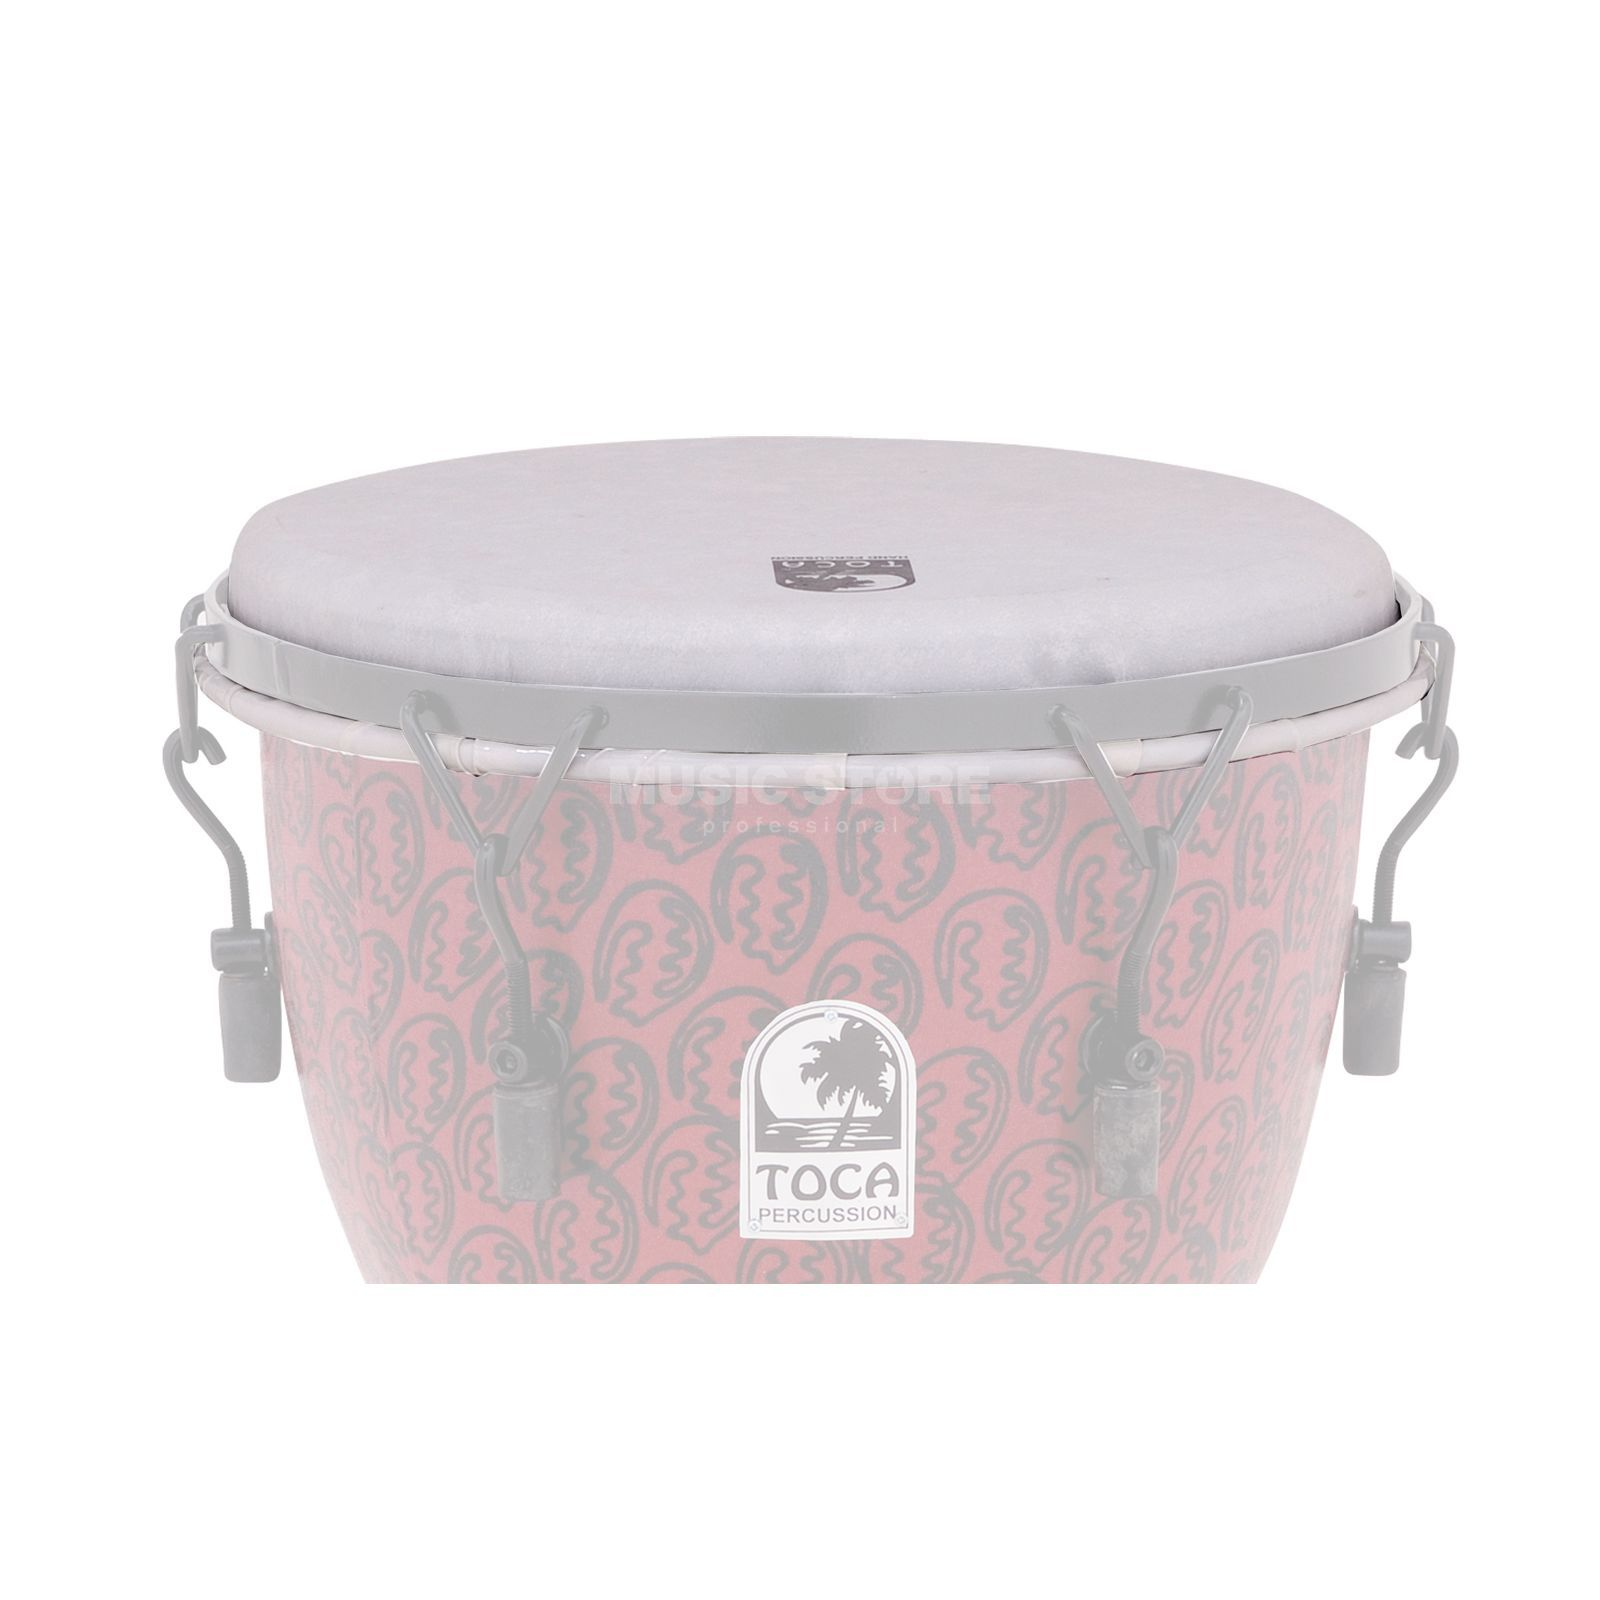 "Toca Percussion Djembe Head 12"", f. Freestyle Djembes TF2DM Produktbillede"